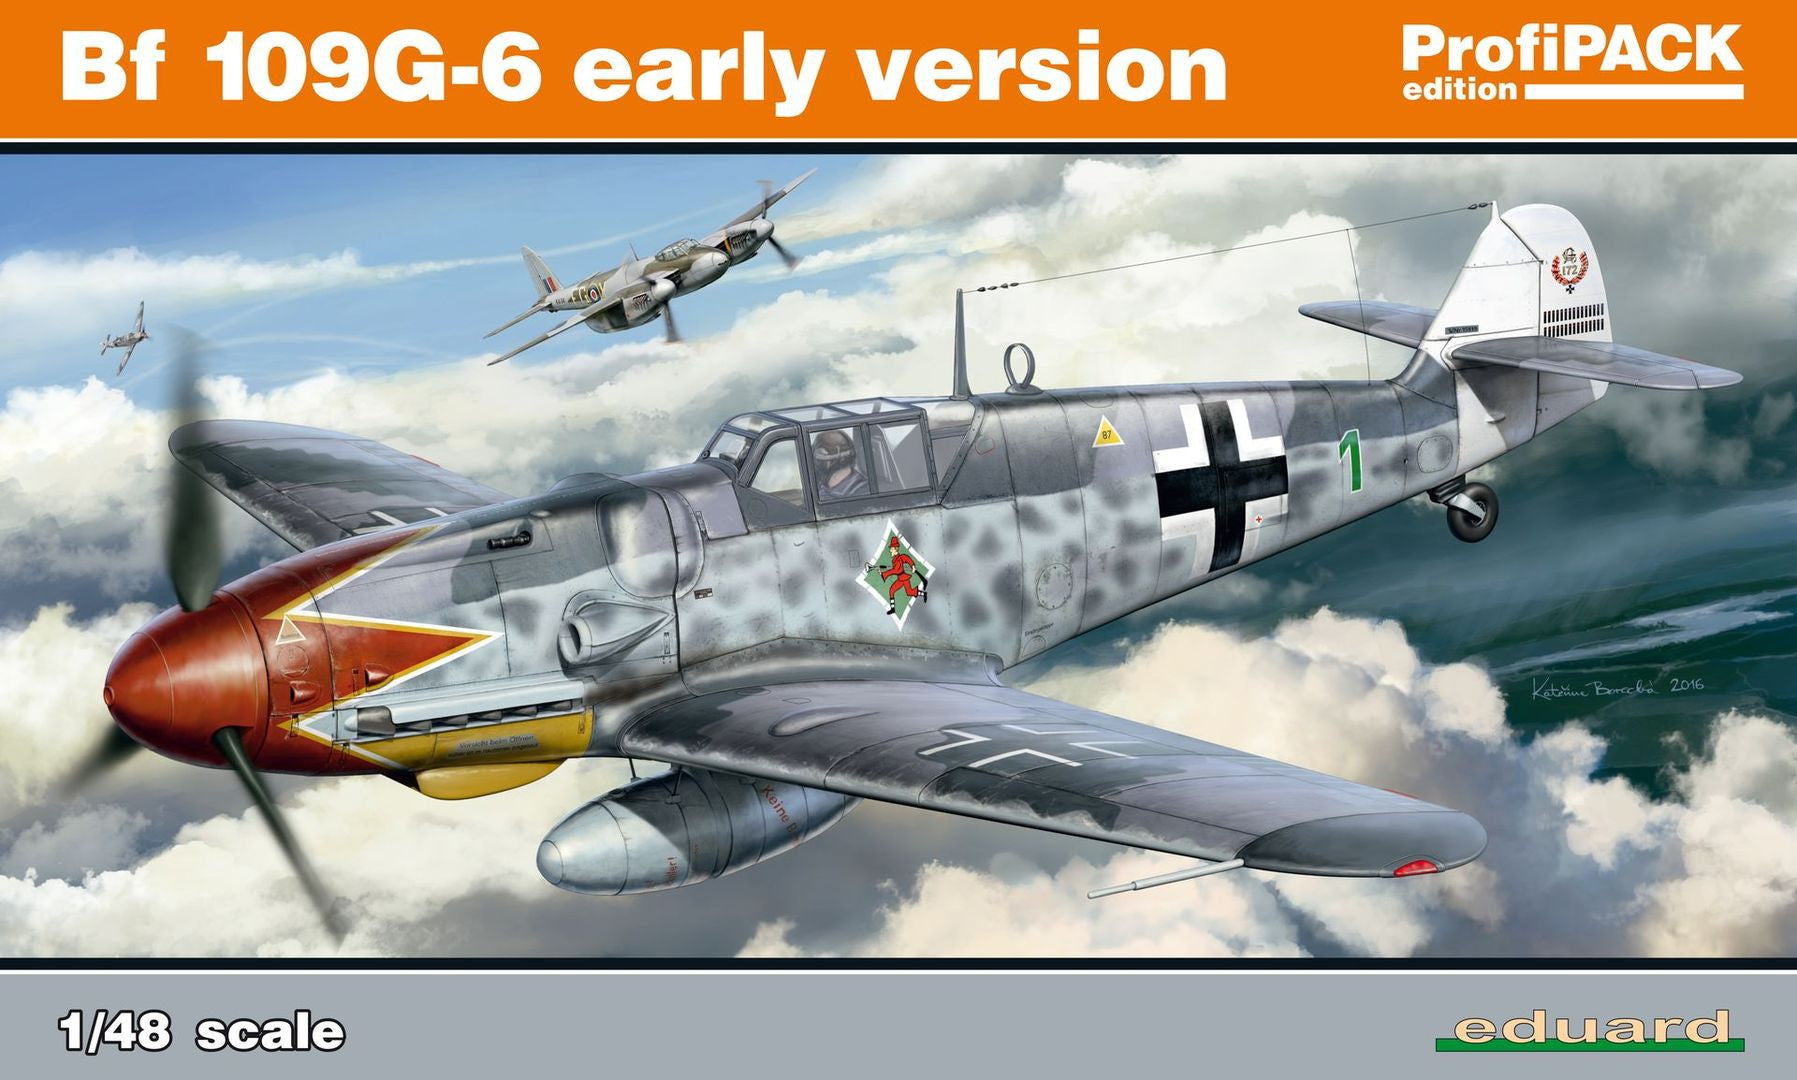 Eduard Aircraft 1/48 Bf 109G-6 Early Version ProfiPACK Kit